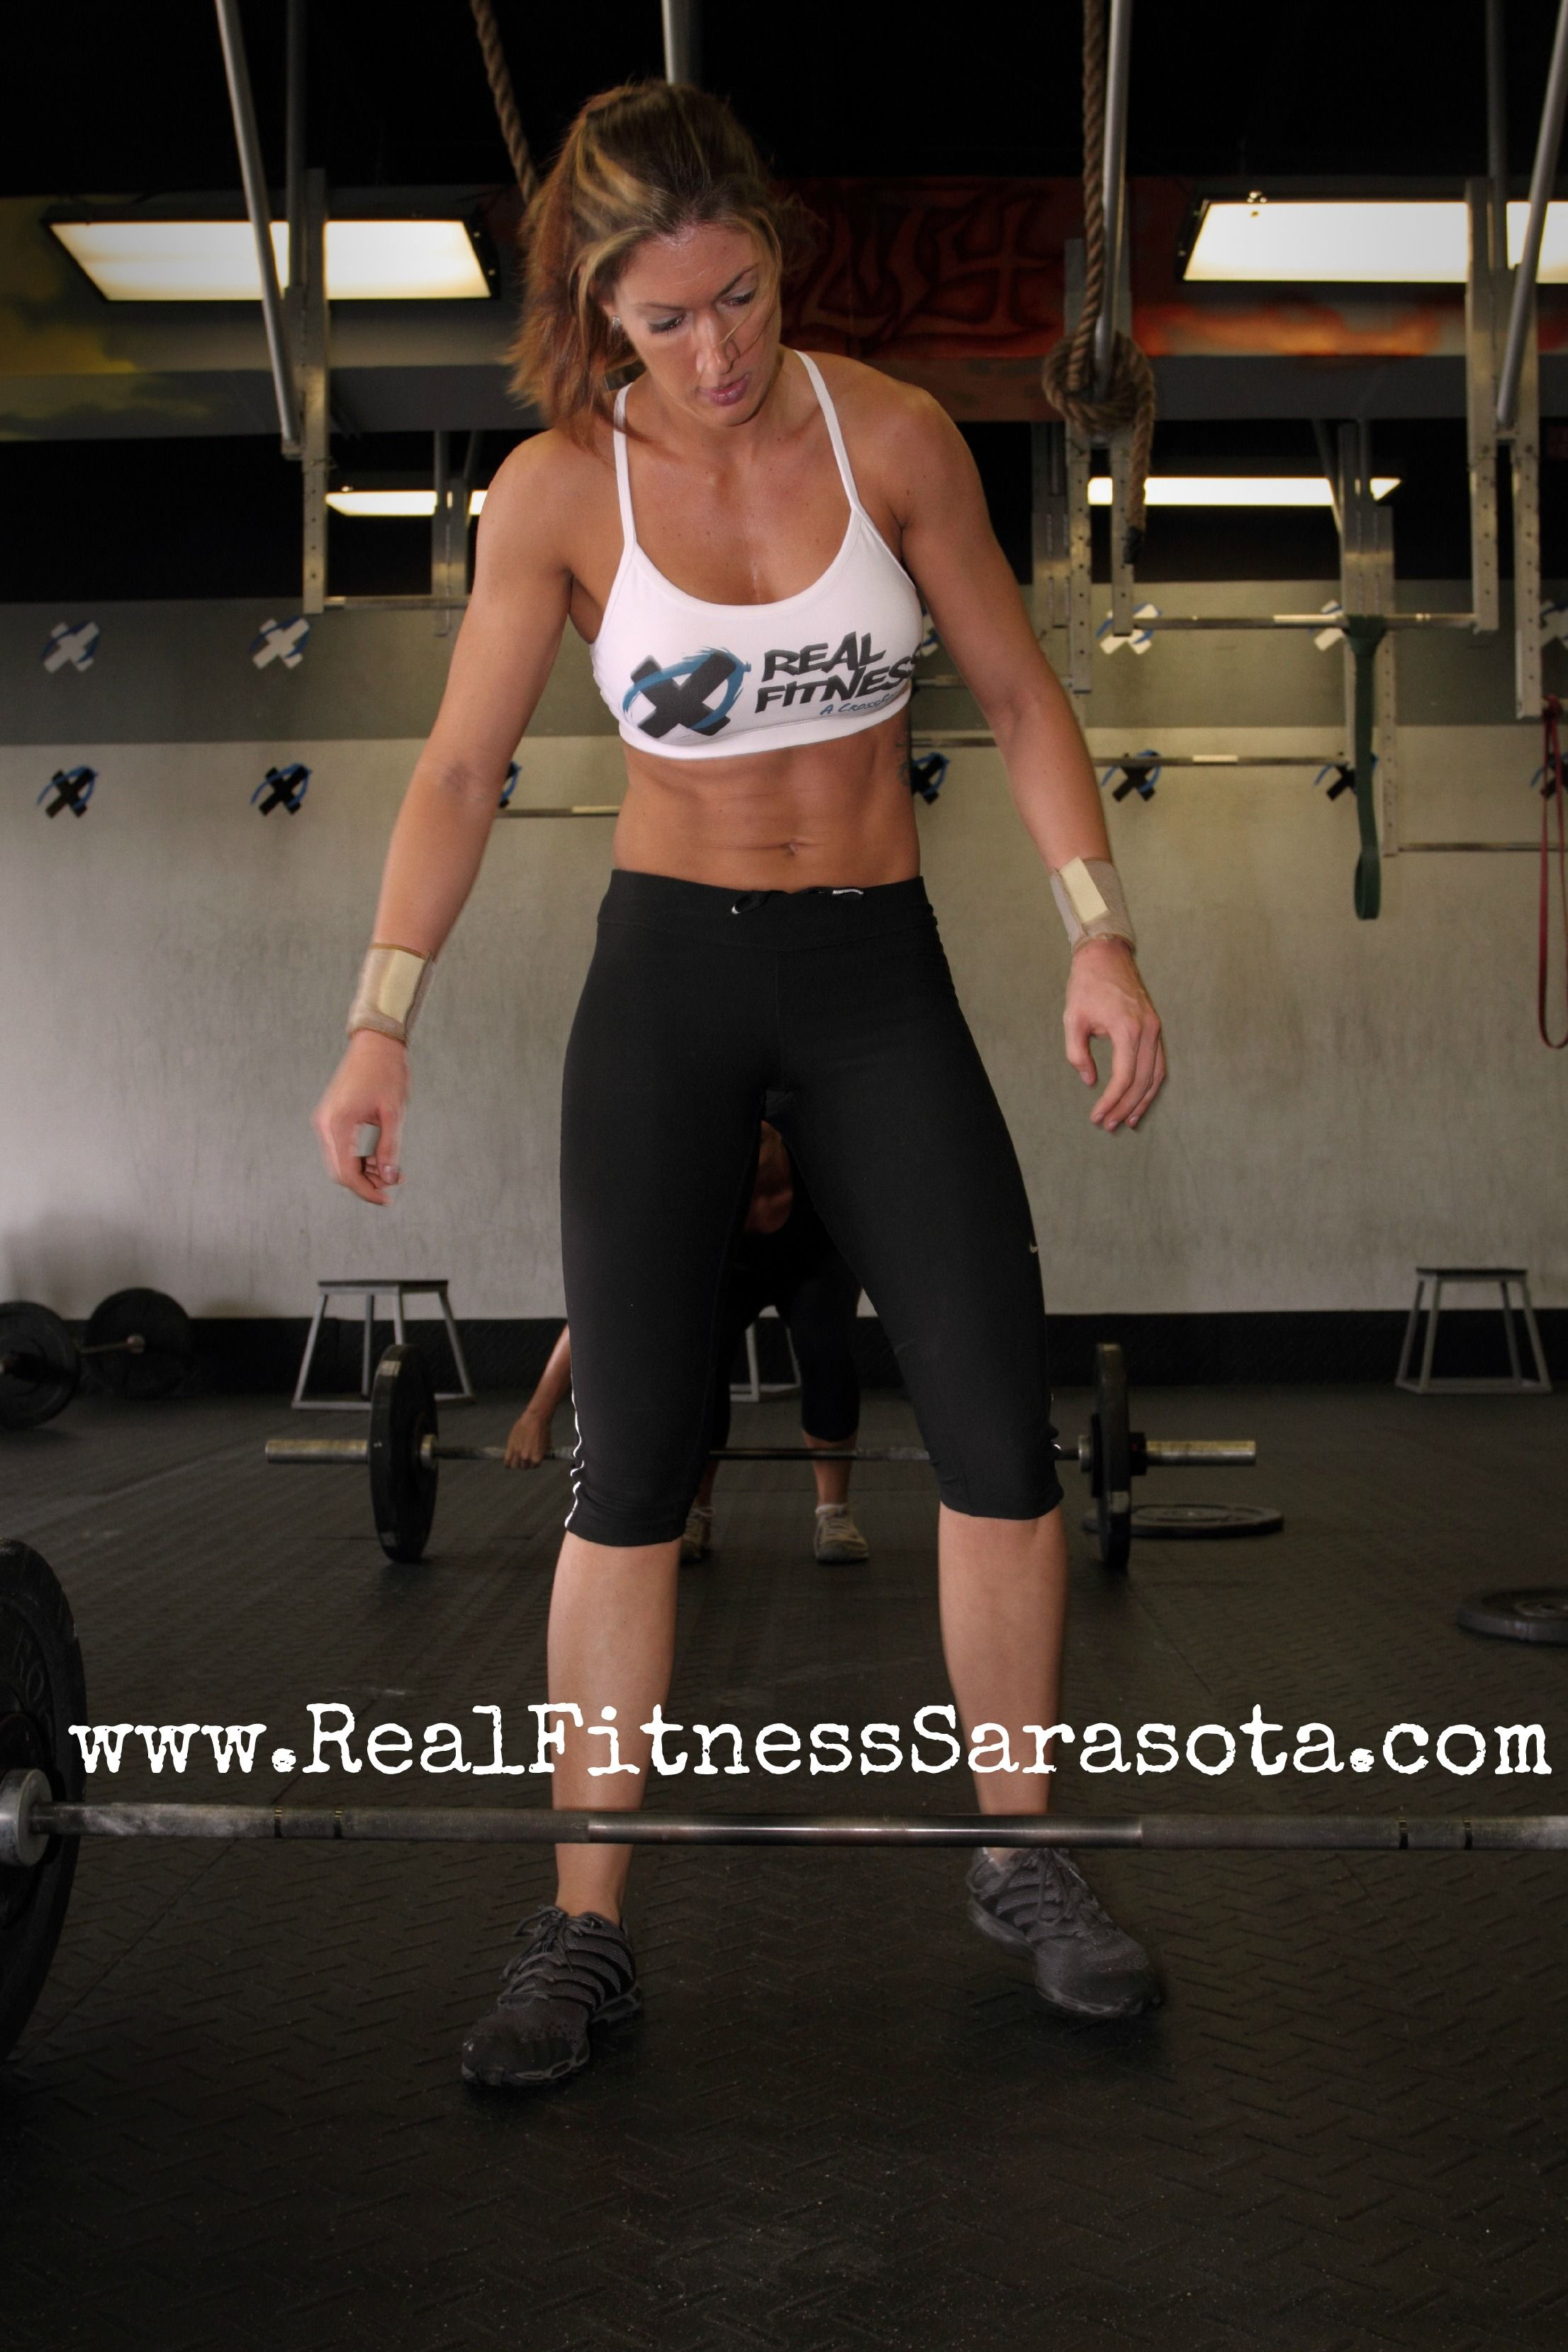 Www Realfitnesssarasota Com My Amazing Cousin Tanya One Of The Coaches Owners At Real Fitness Sarasota Crossfit Gym Crossfit Workouts Crossfit Gym Fitness